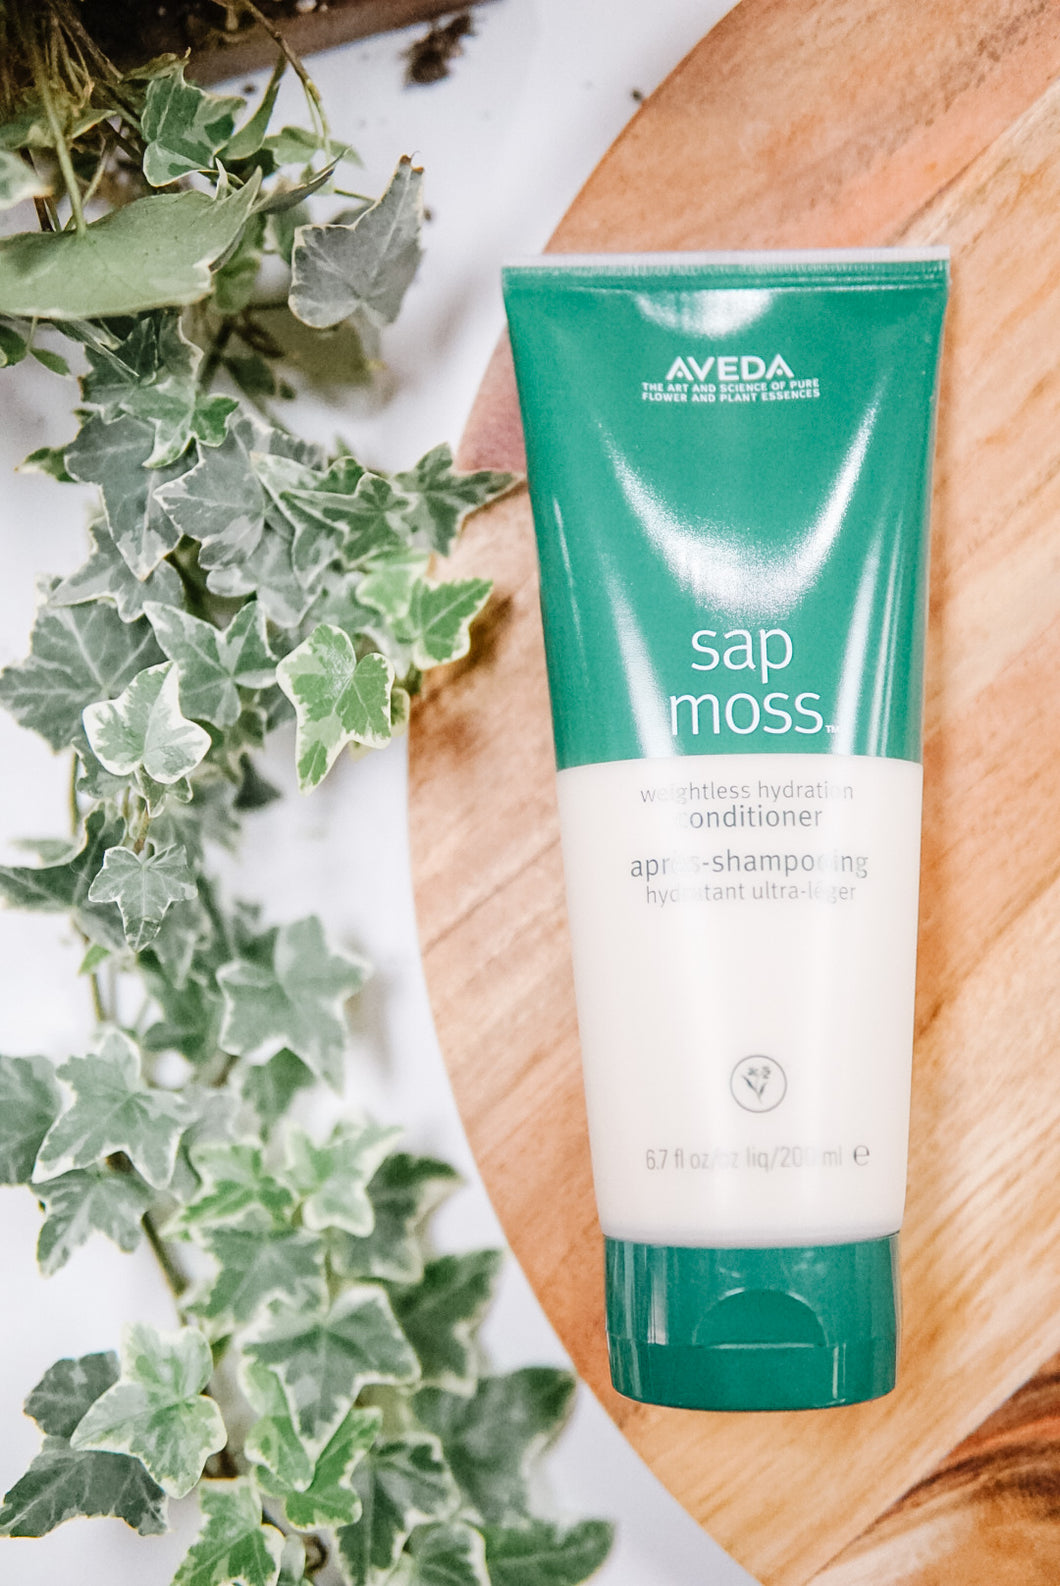 AVEDA Sap Moss Conditioner